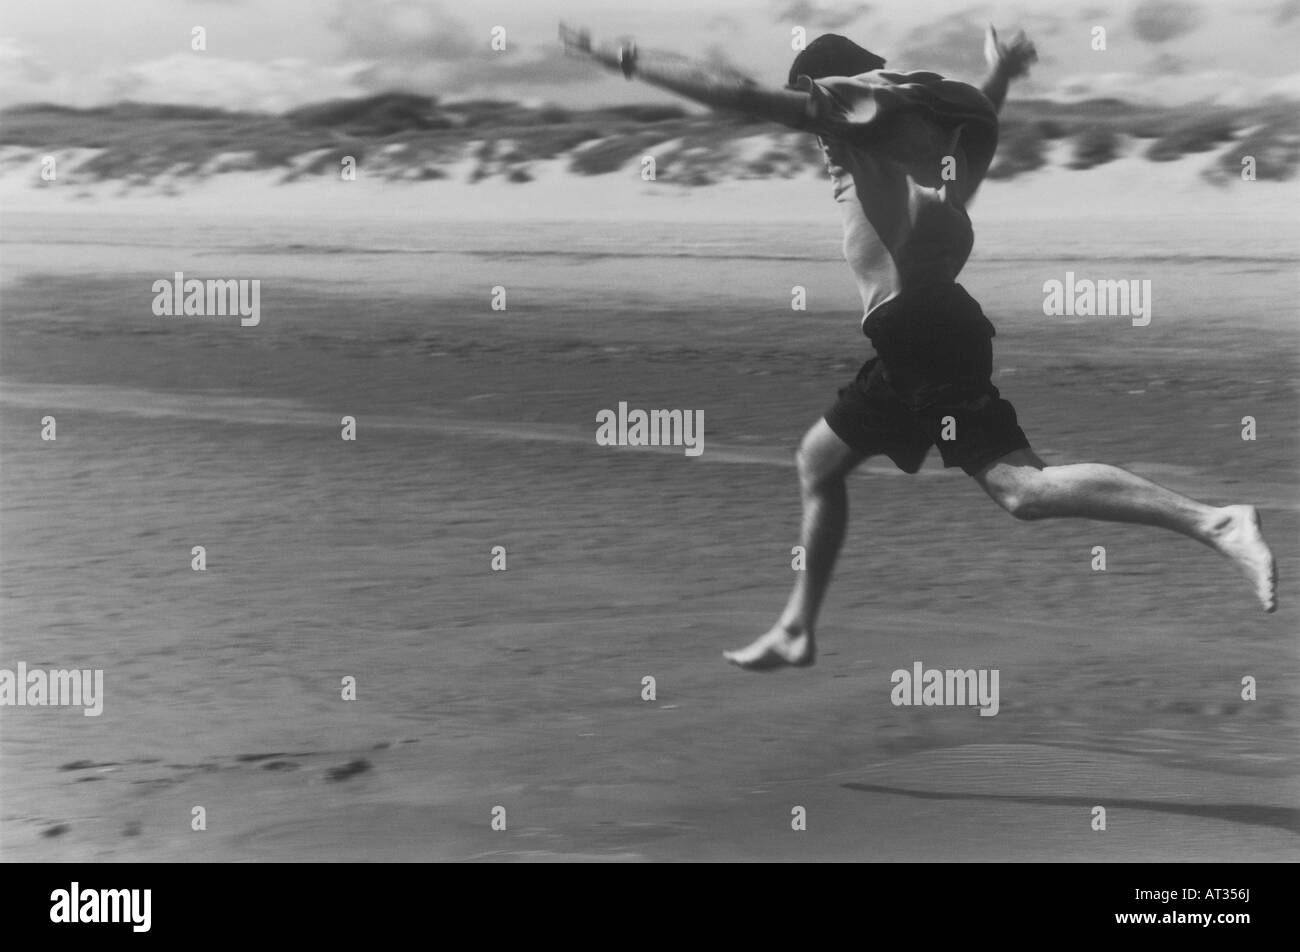 A man running a long a beach, jumping arms stretched out - Stock Image